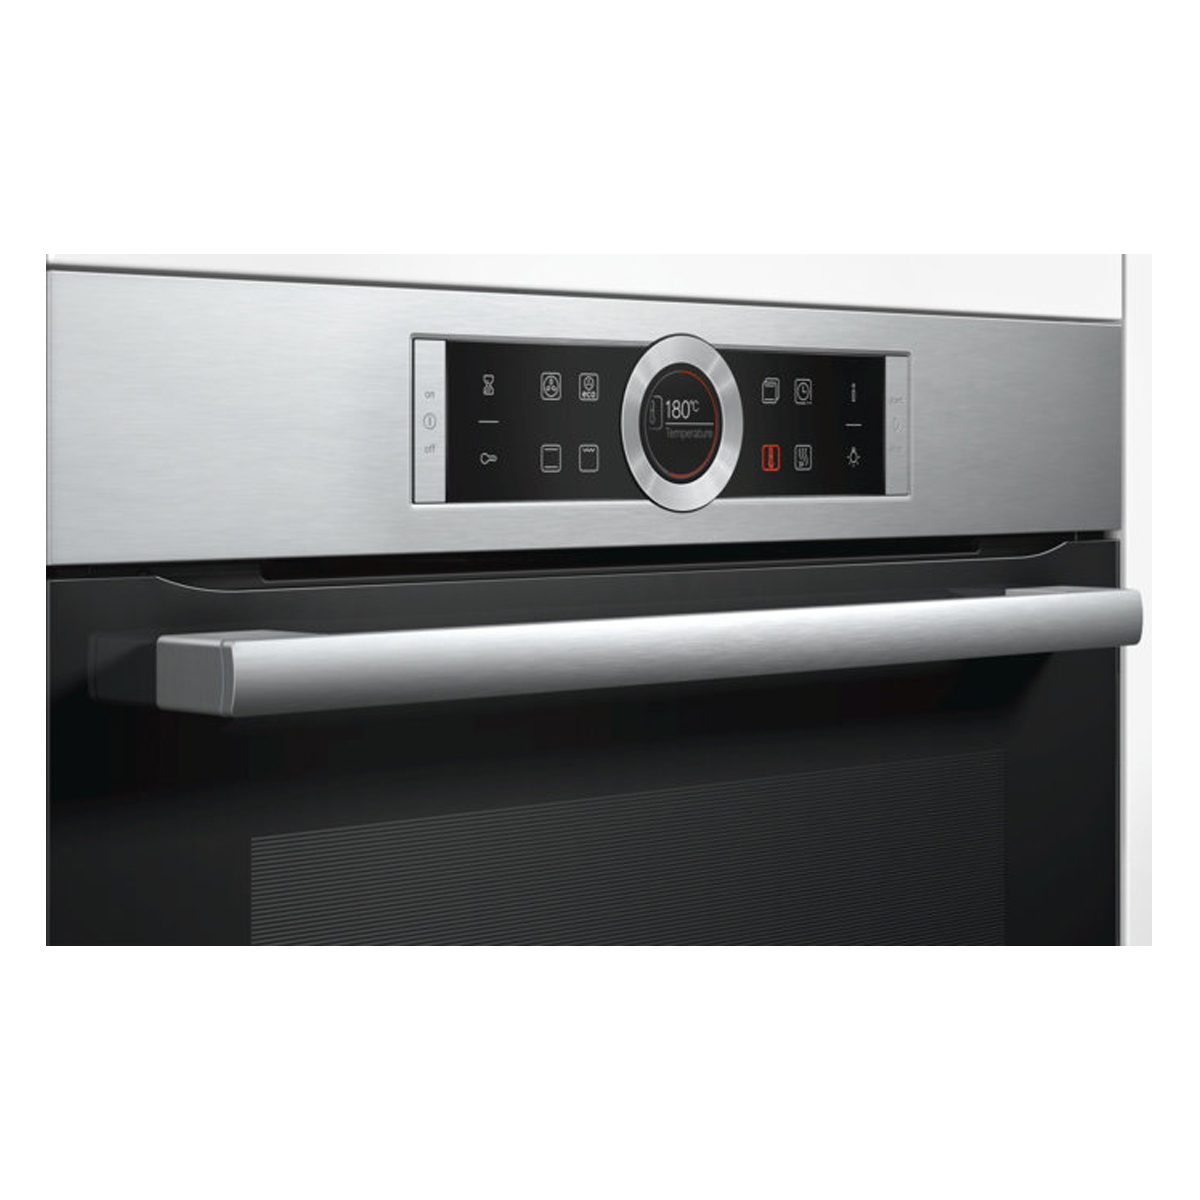 Bosch HBG633BS1A 60cm Serie 8 Electric Built-In Oven 48961